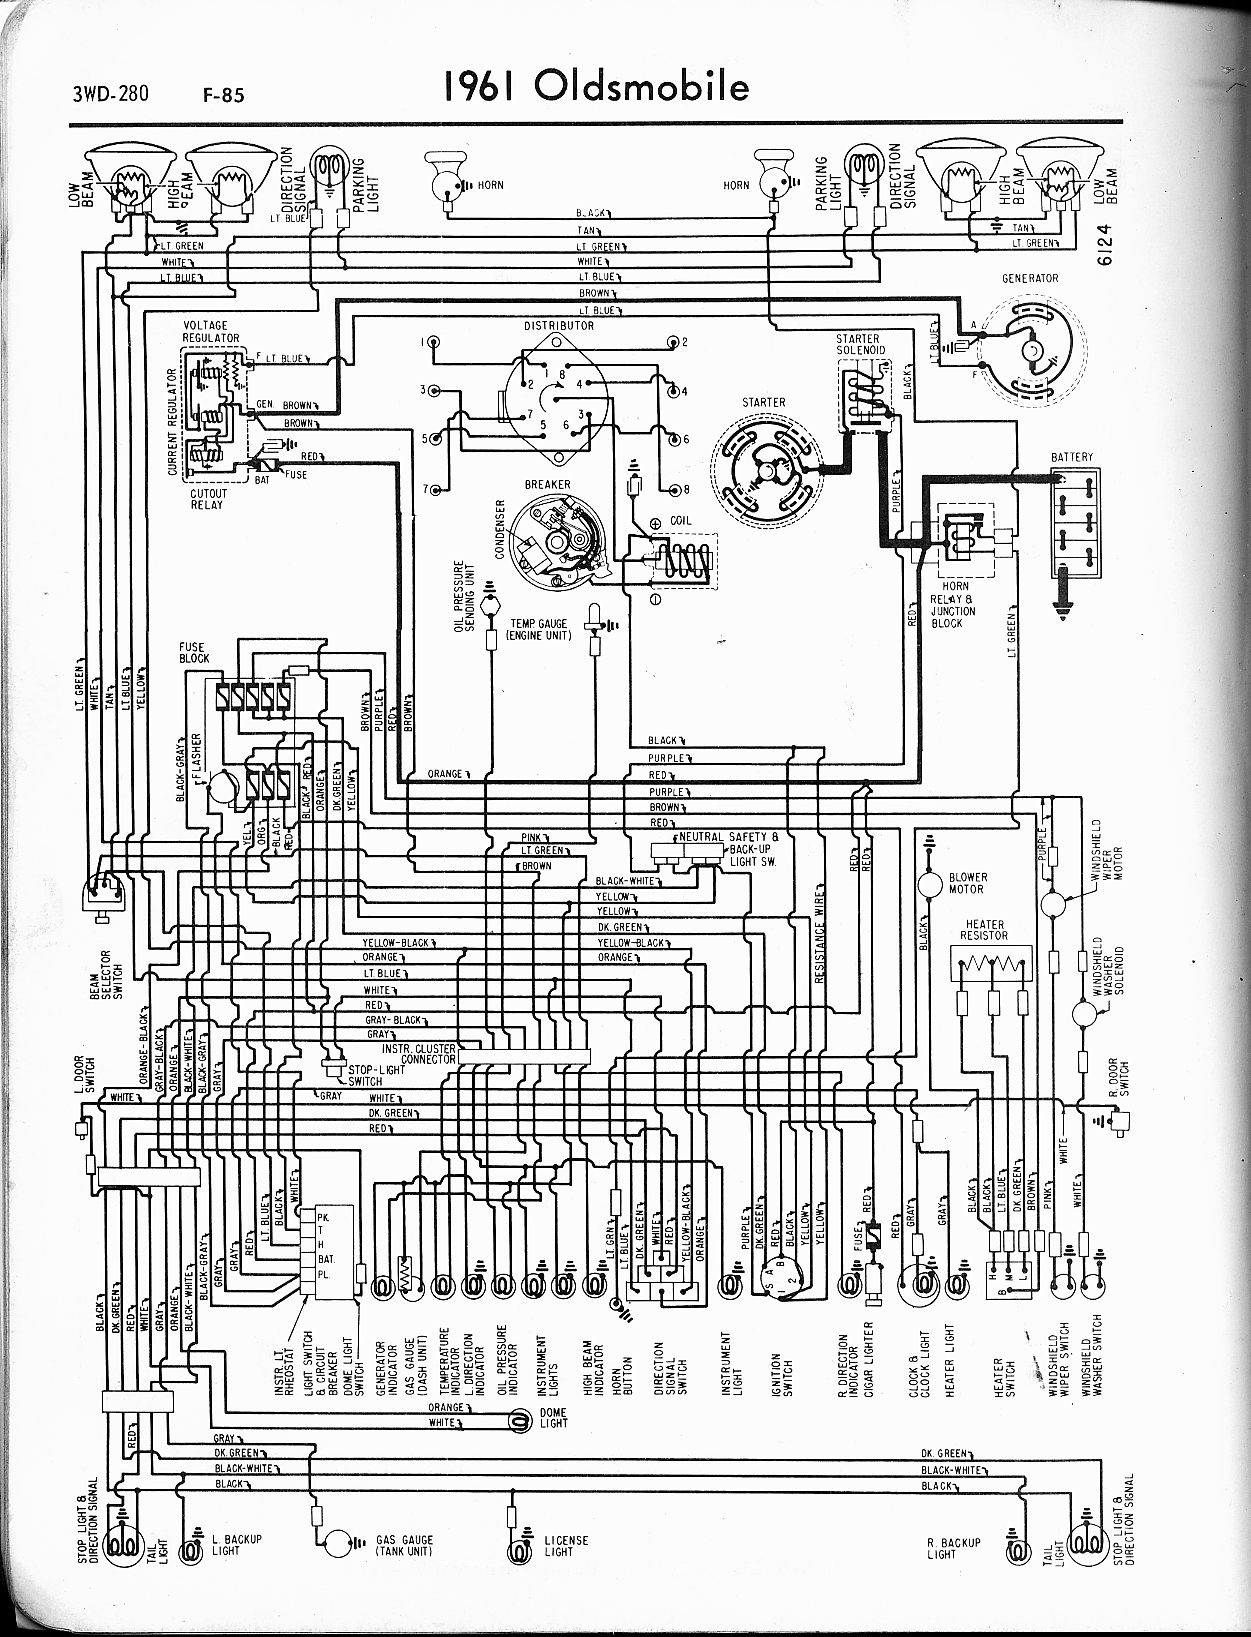 MWire5765 280 oldsmobile wiring diagram oldsmobile wiring diagrams instruction Wiring Schematics for Johnson Outboards at suagrazia.org